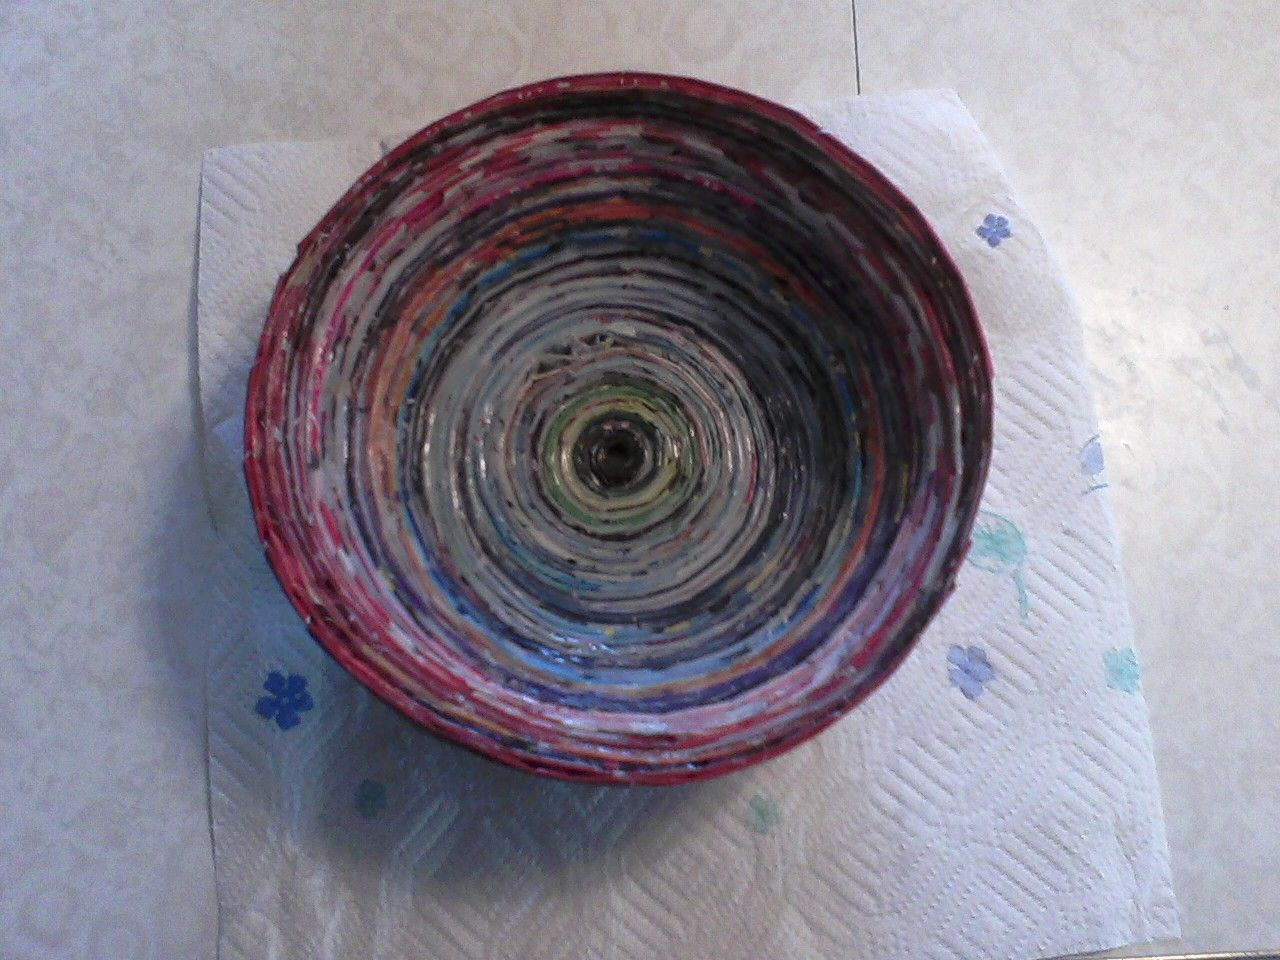 A bowl made out of magazine pages.